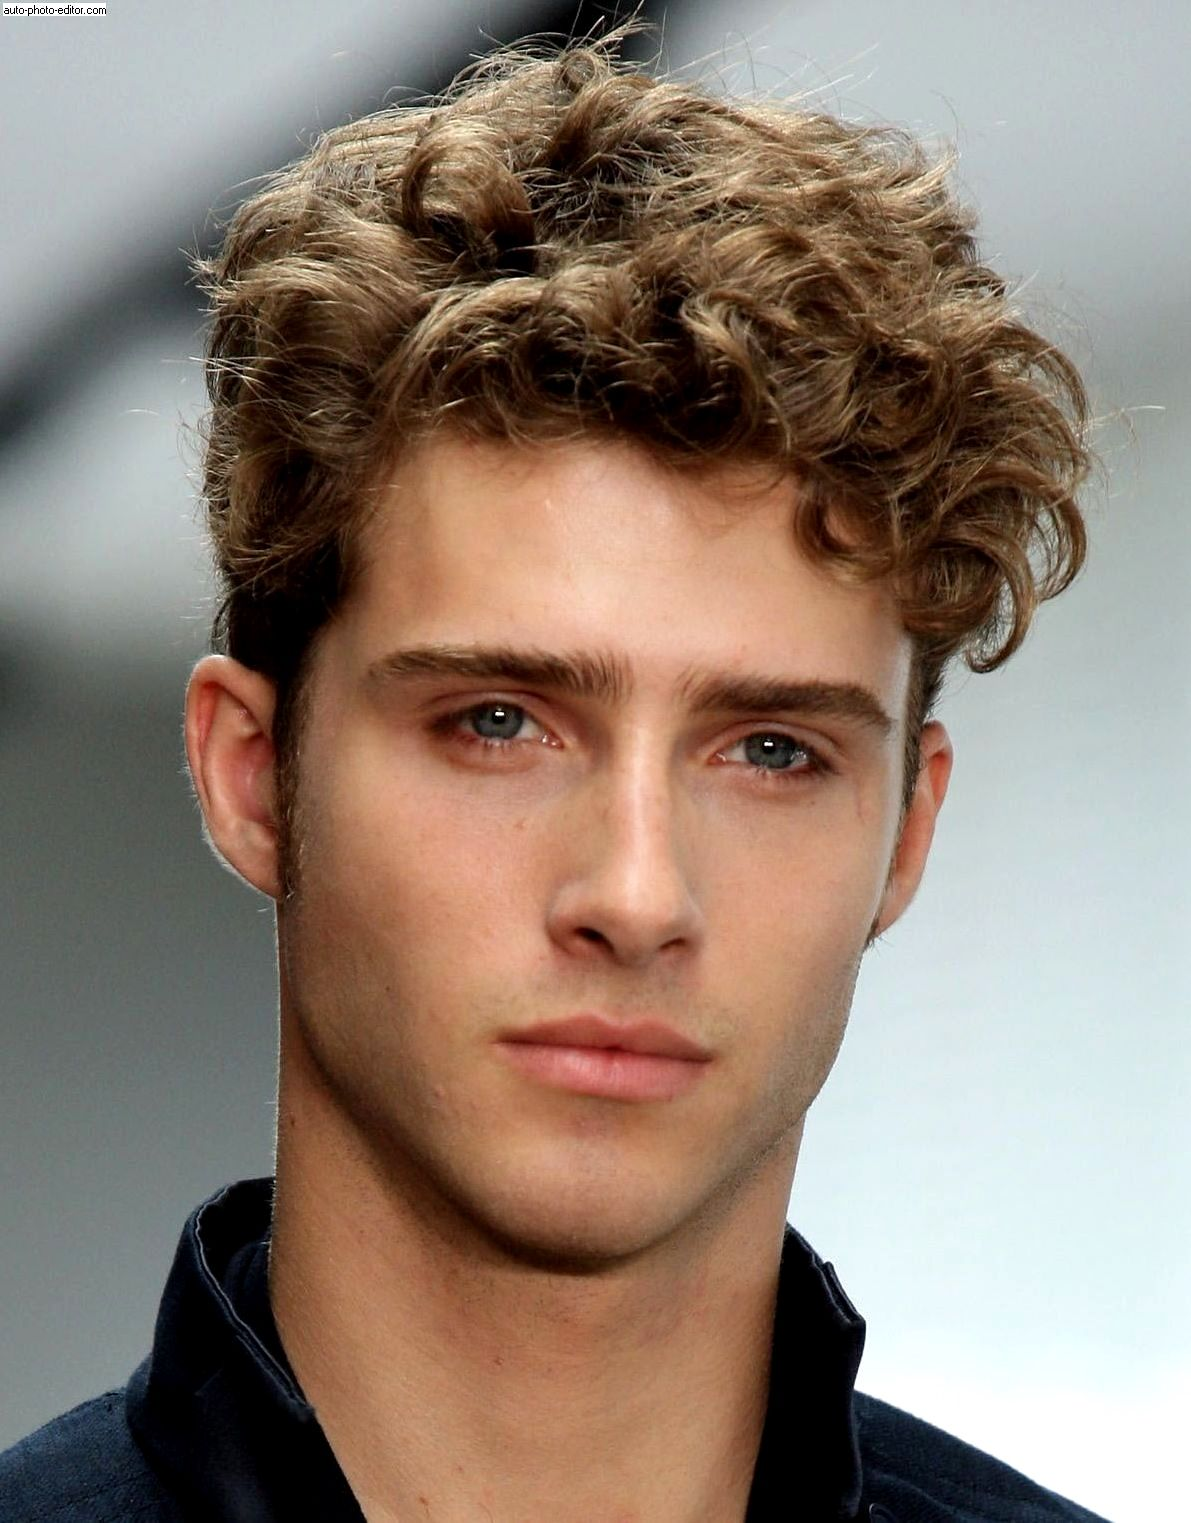 Young Men Hairstyle Trick Curly Hair Men Men S Curly Hairstyles Curly Hair Styles